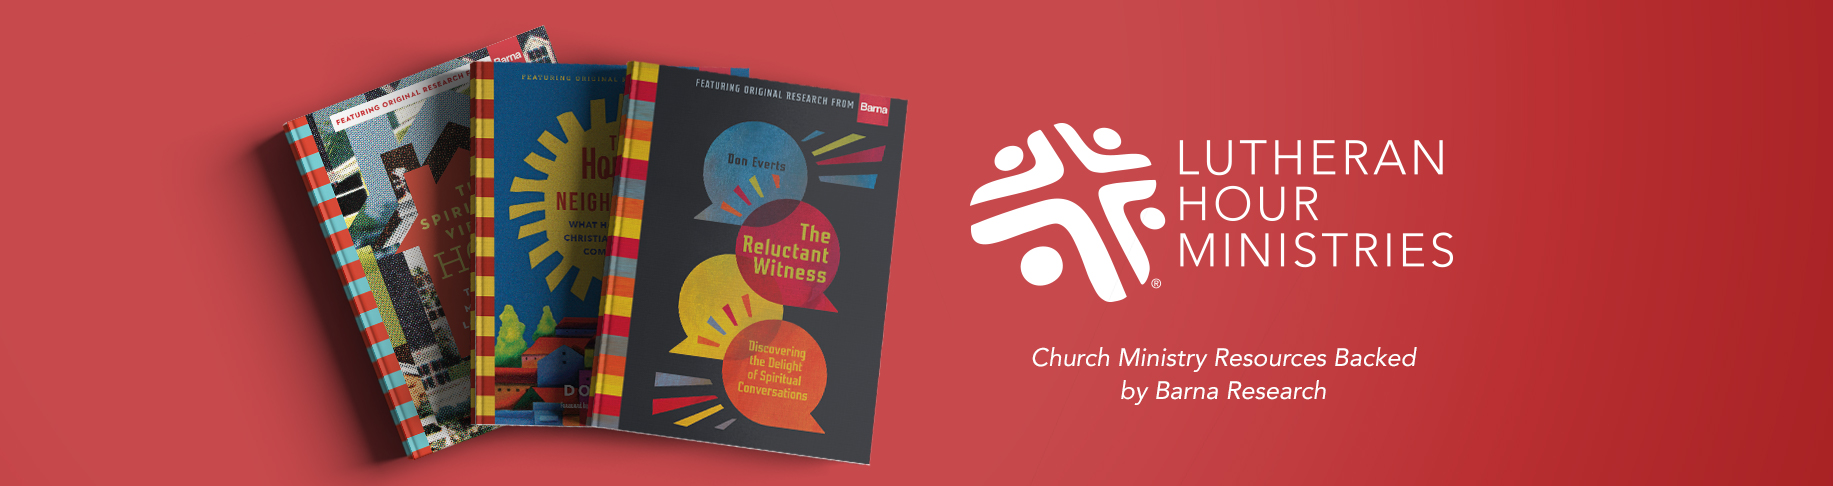 Lutheran Hour Ministries Resources